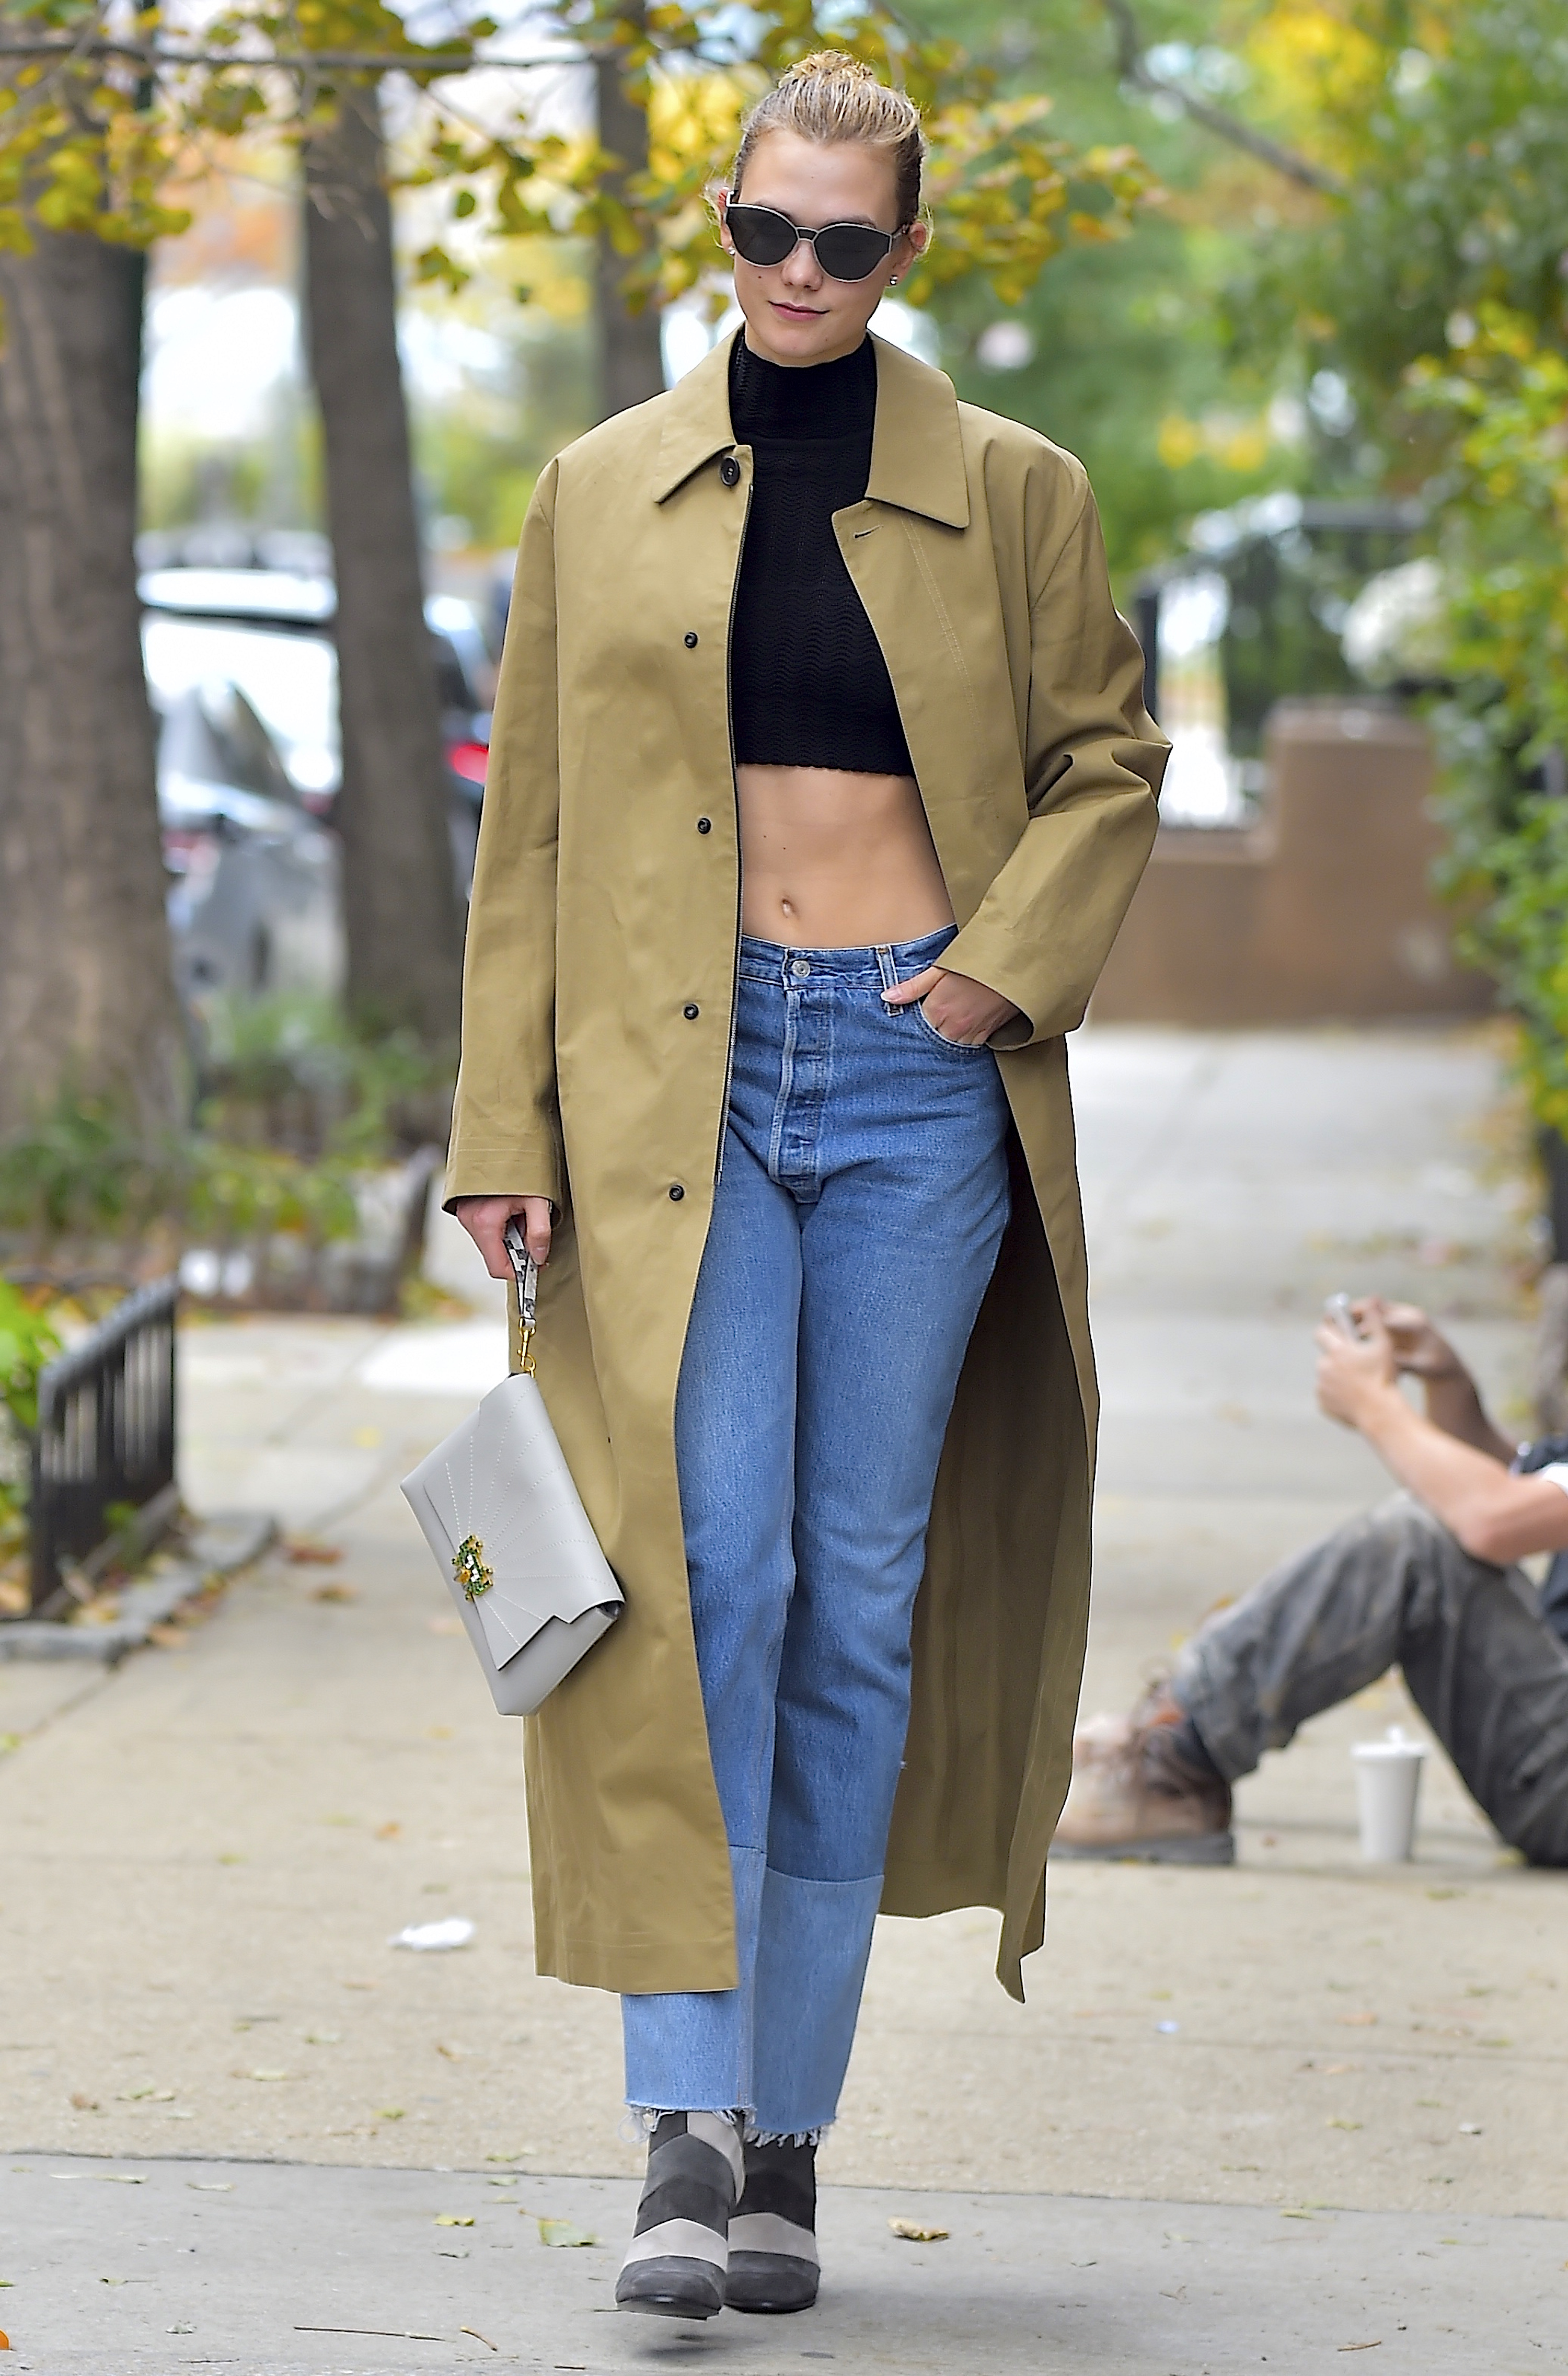 Karlie Kloss Trench Coat And Crop Top Combo Is Perfect